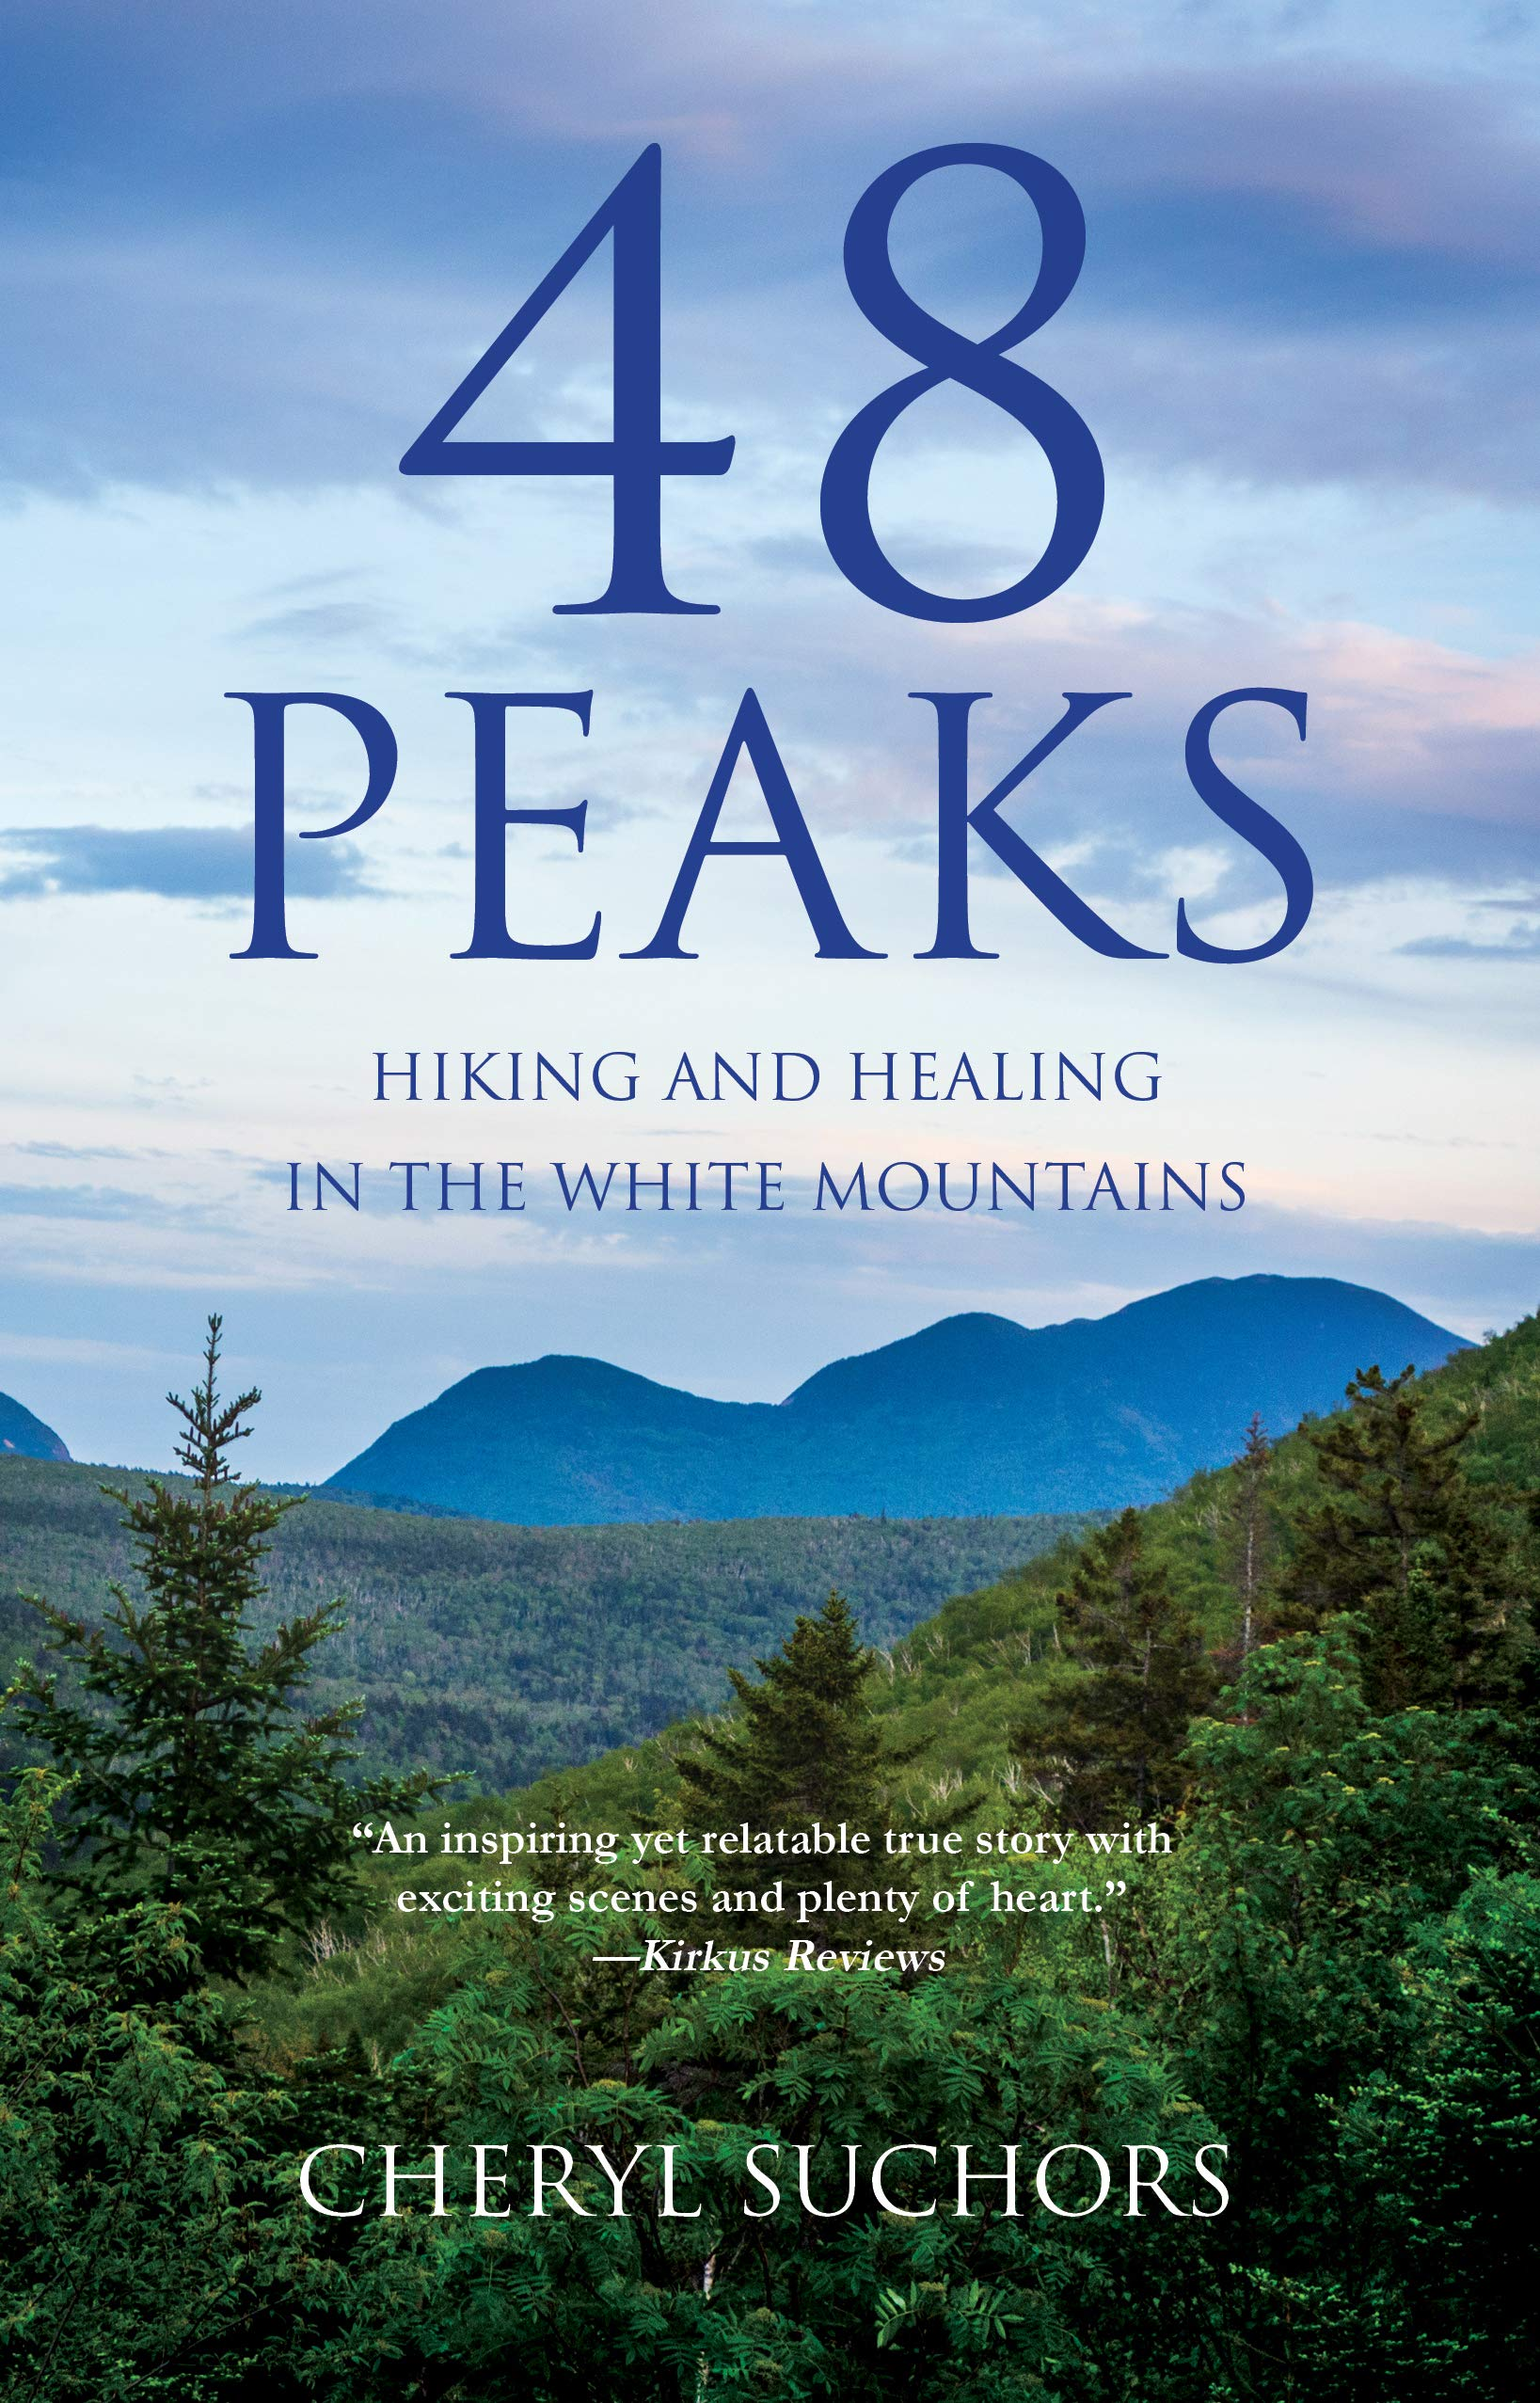 Image result for 48 peaks hiking and healing in the white mountains